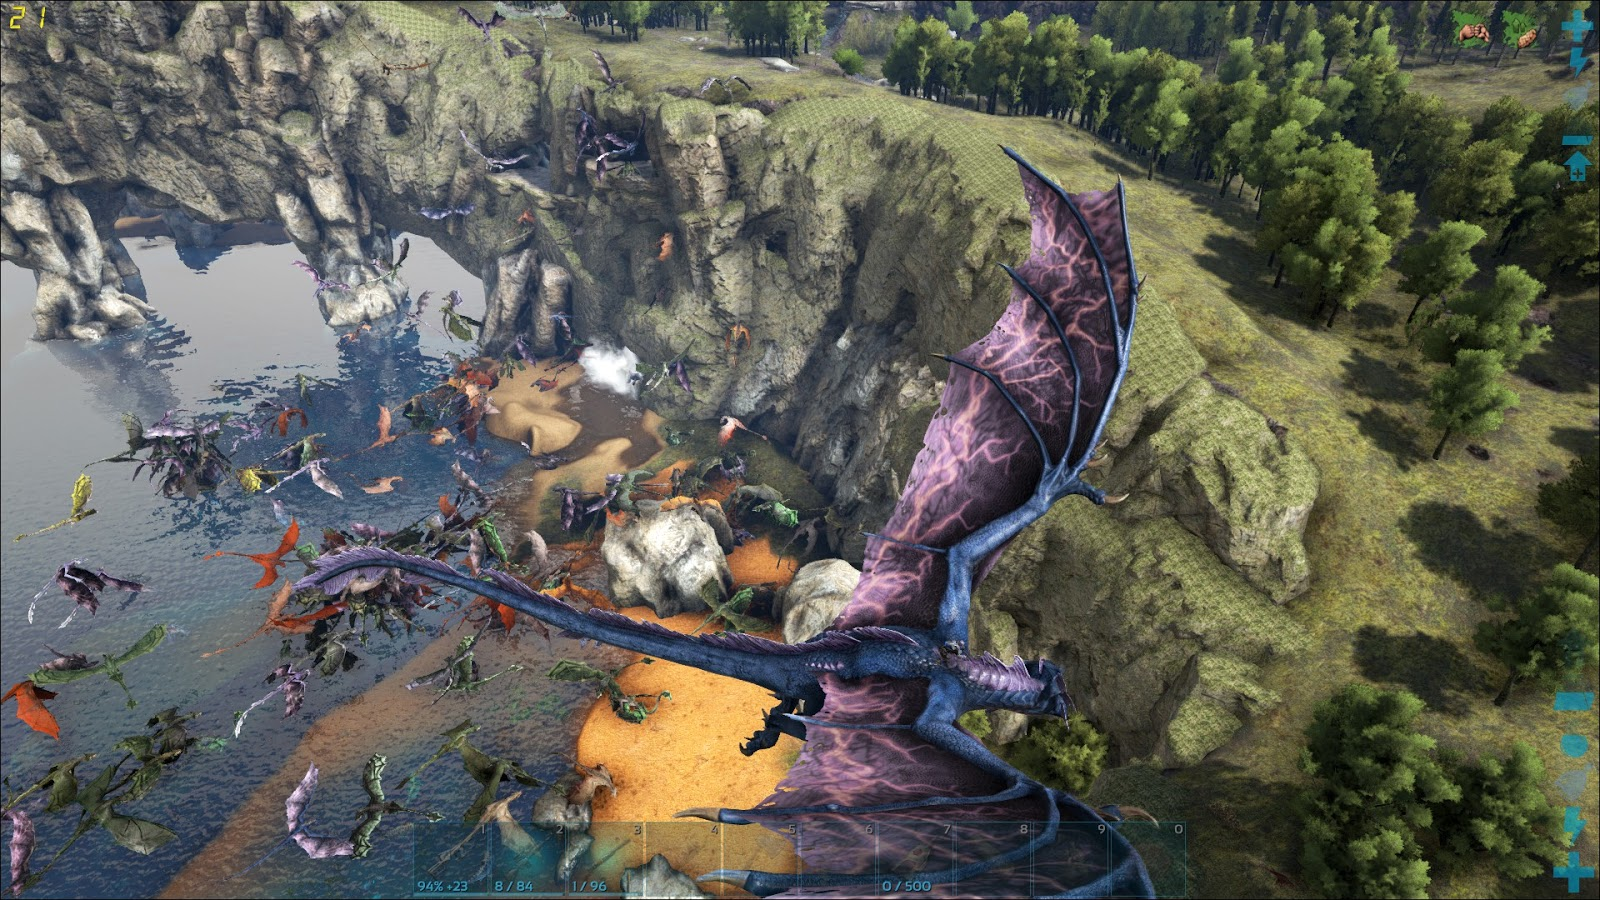 SL Newser - Other Grids, MMOs, and Games: Ark Survival Evolved Update: New  Map, New Version, and Lots of Mods